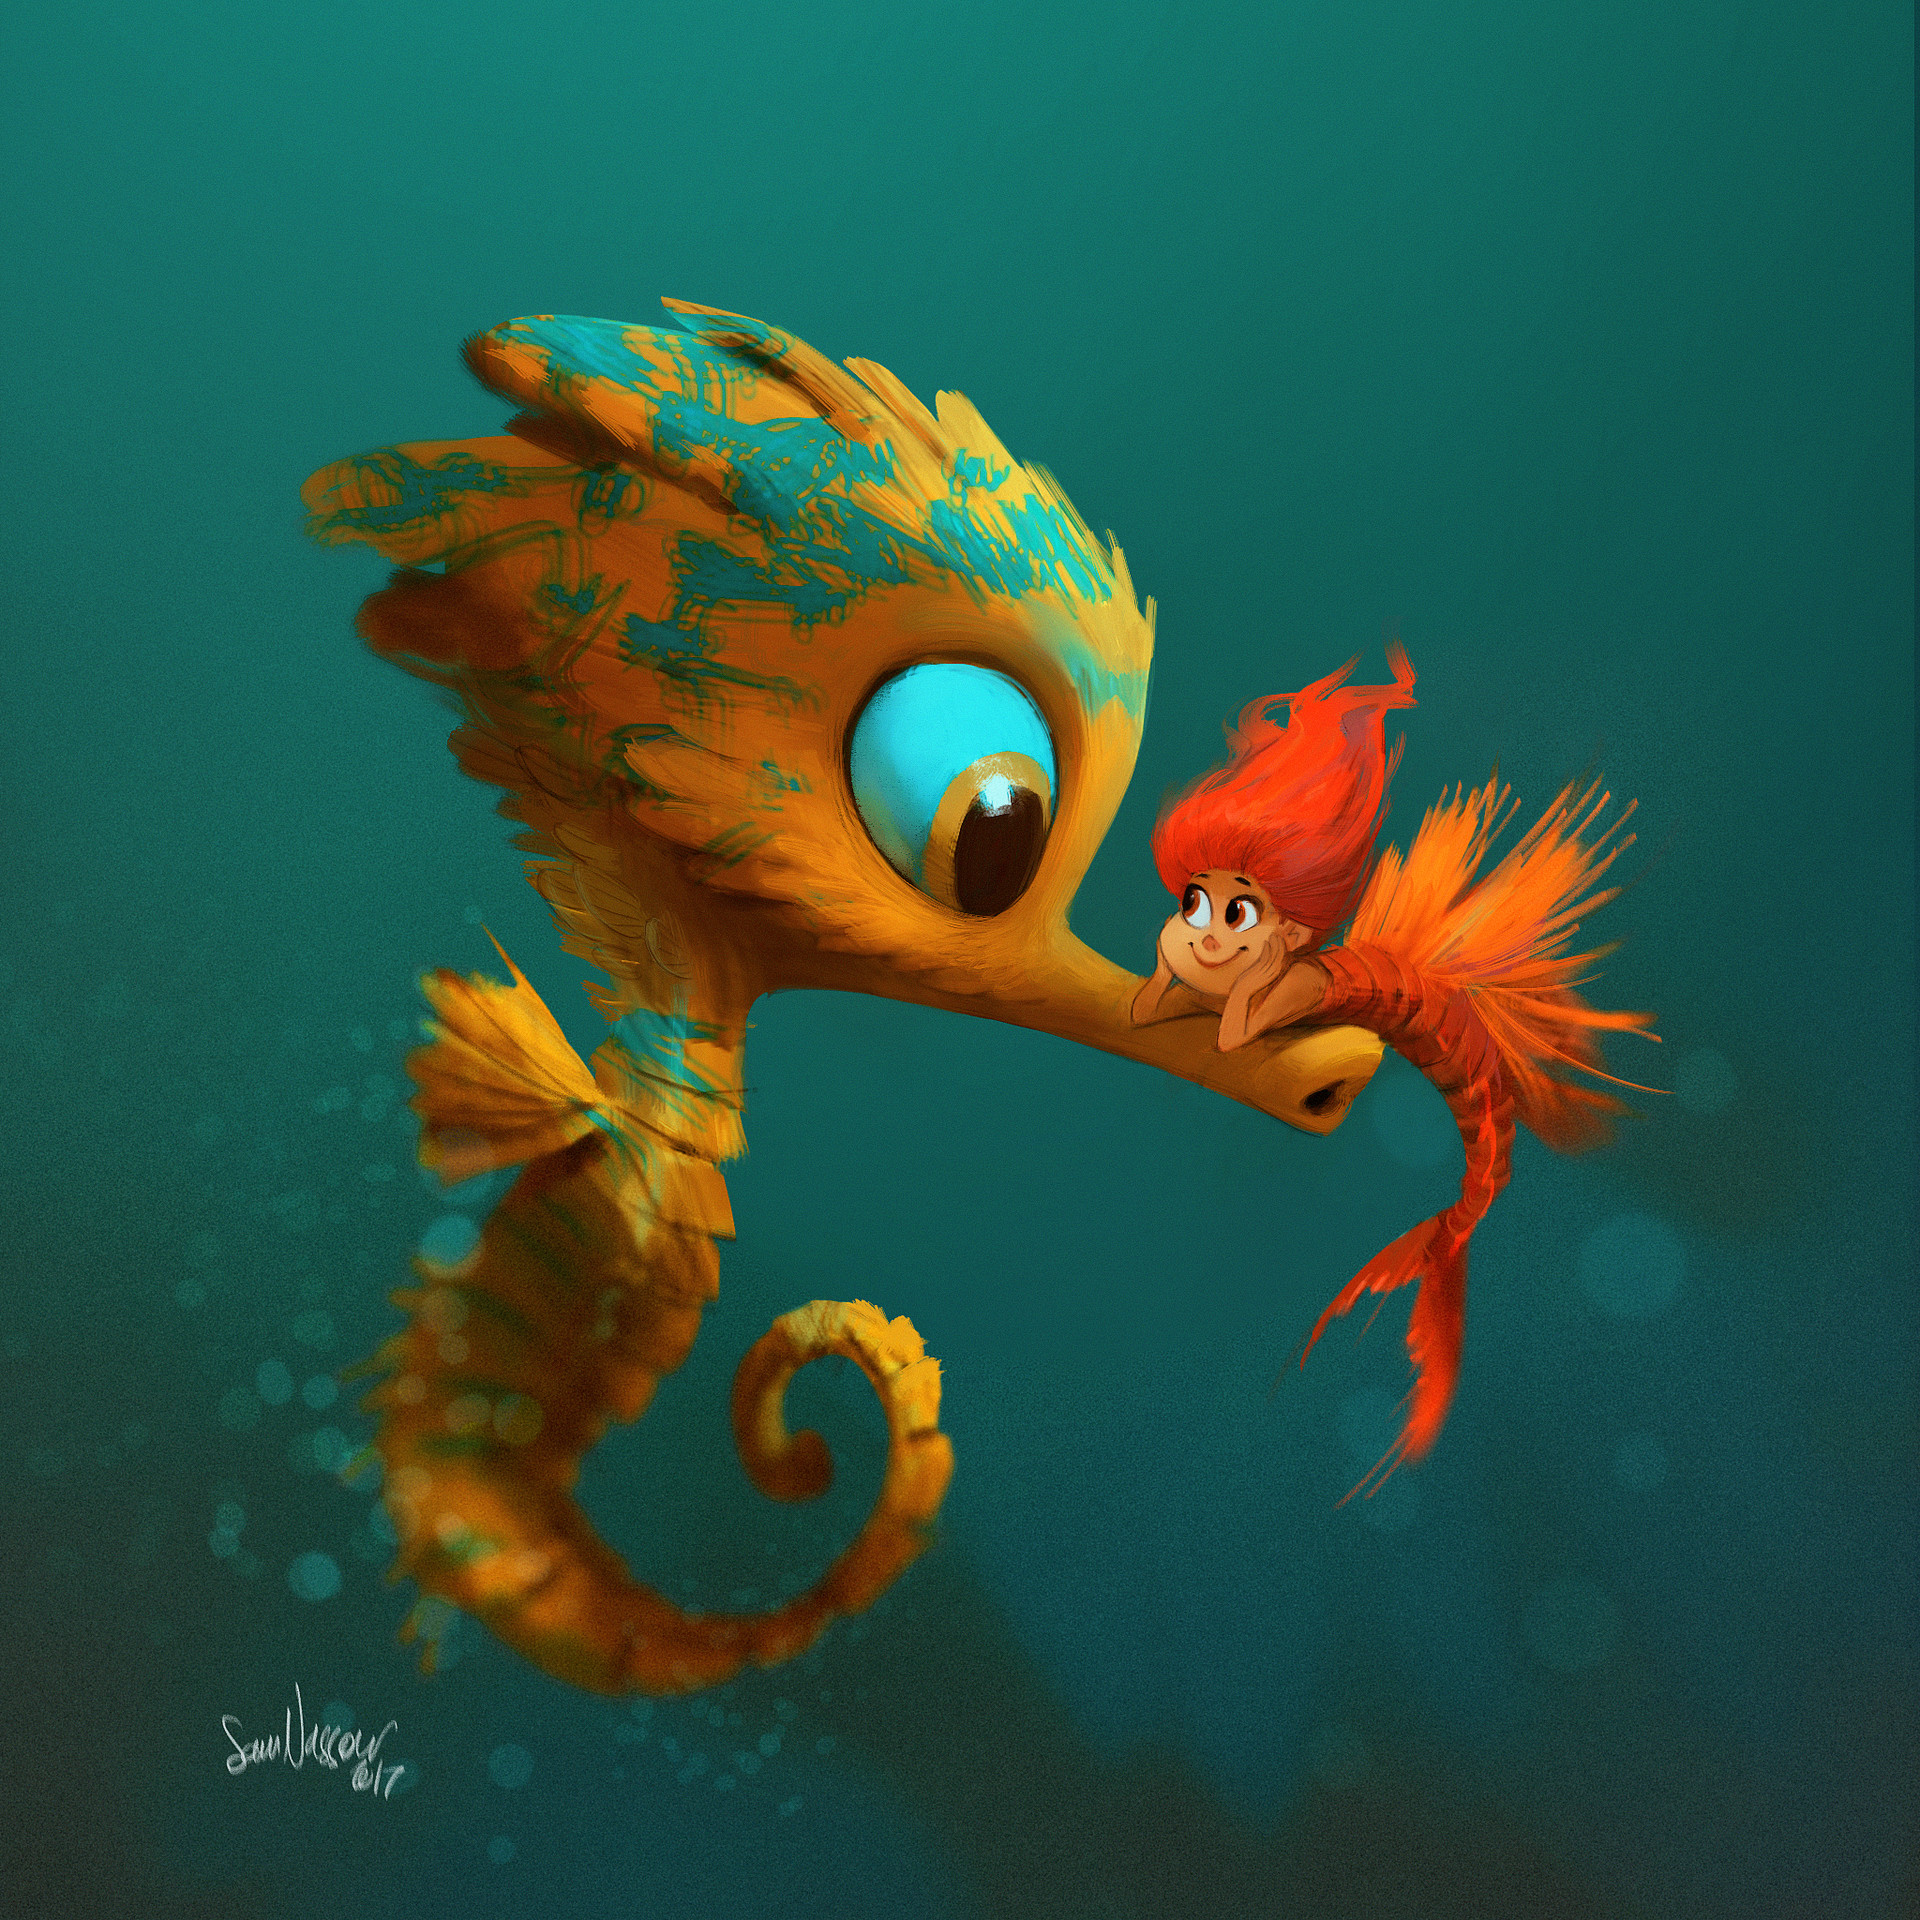 Sam nassour mermseahorse